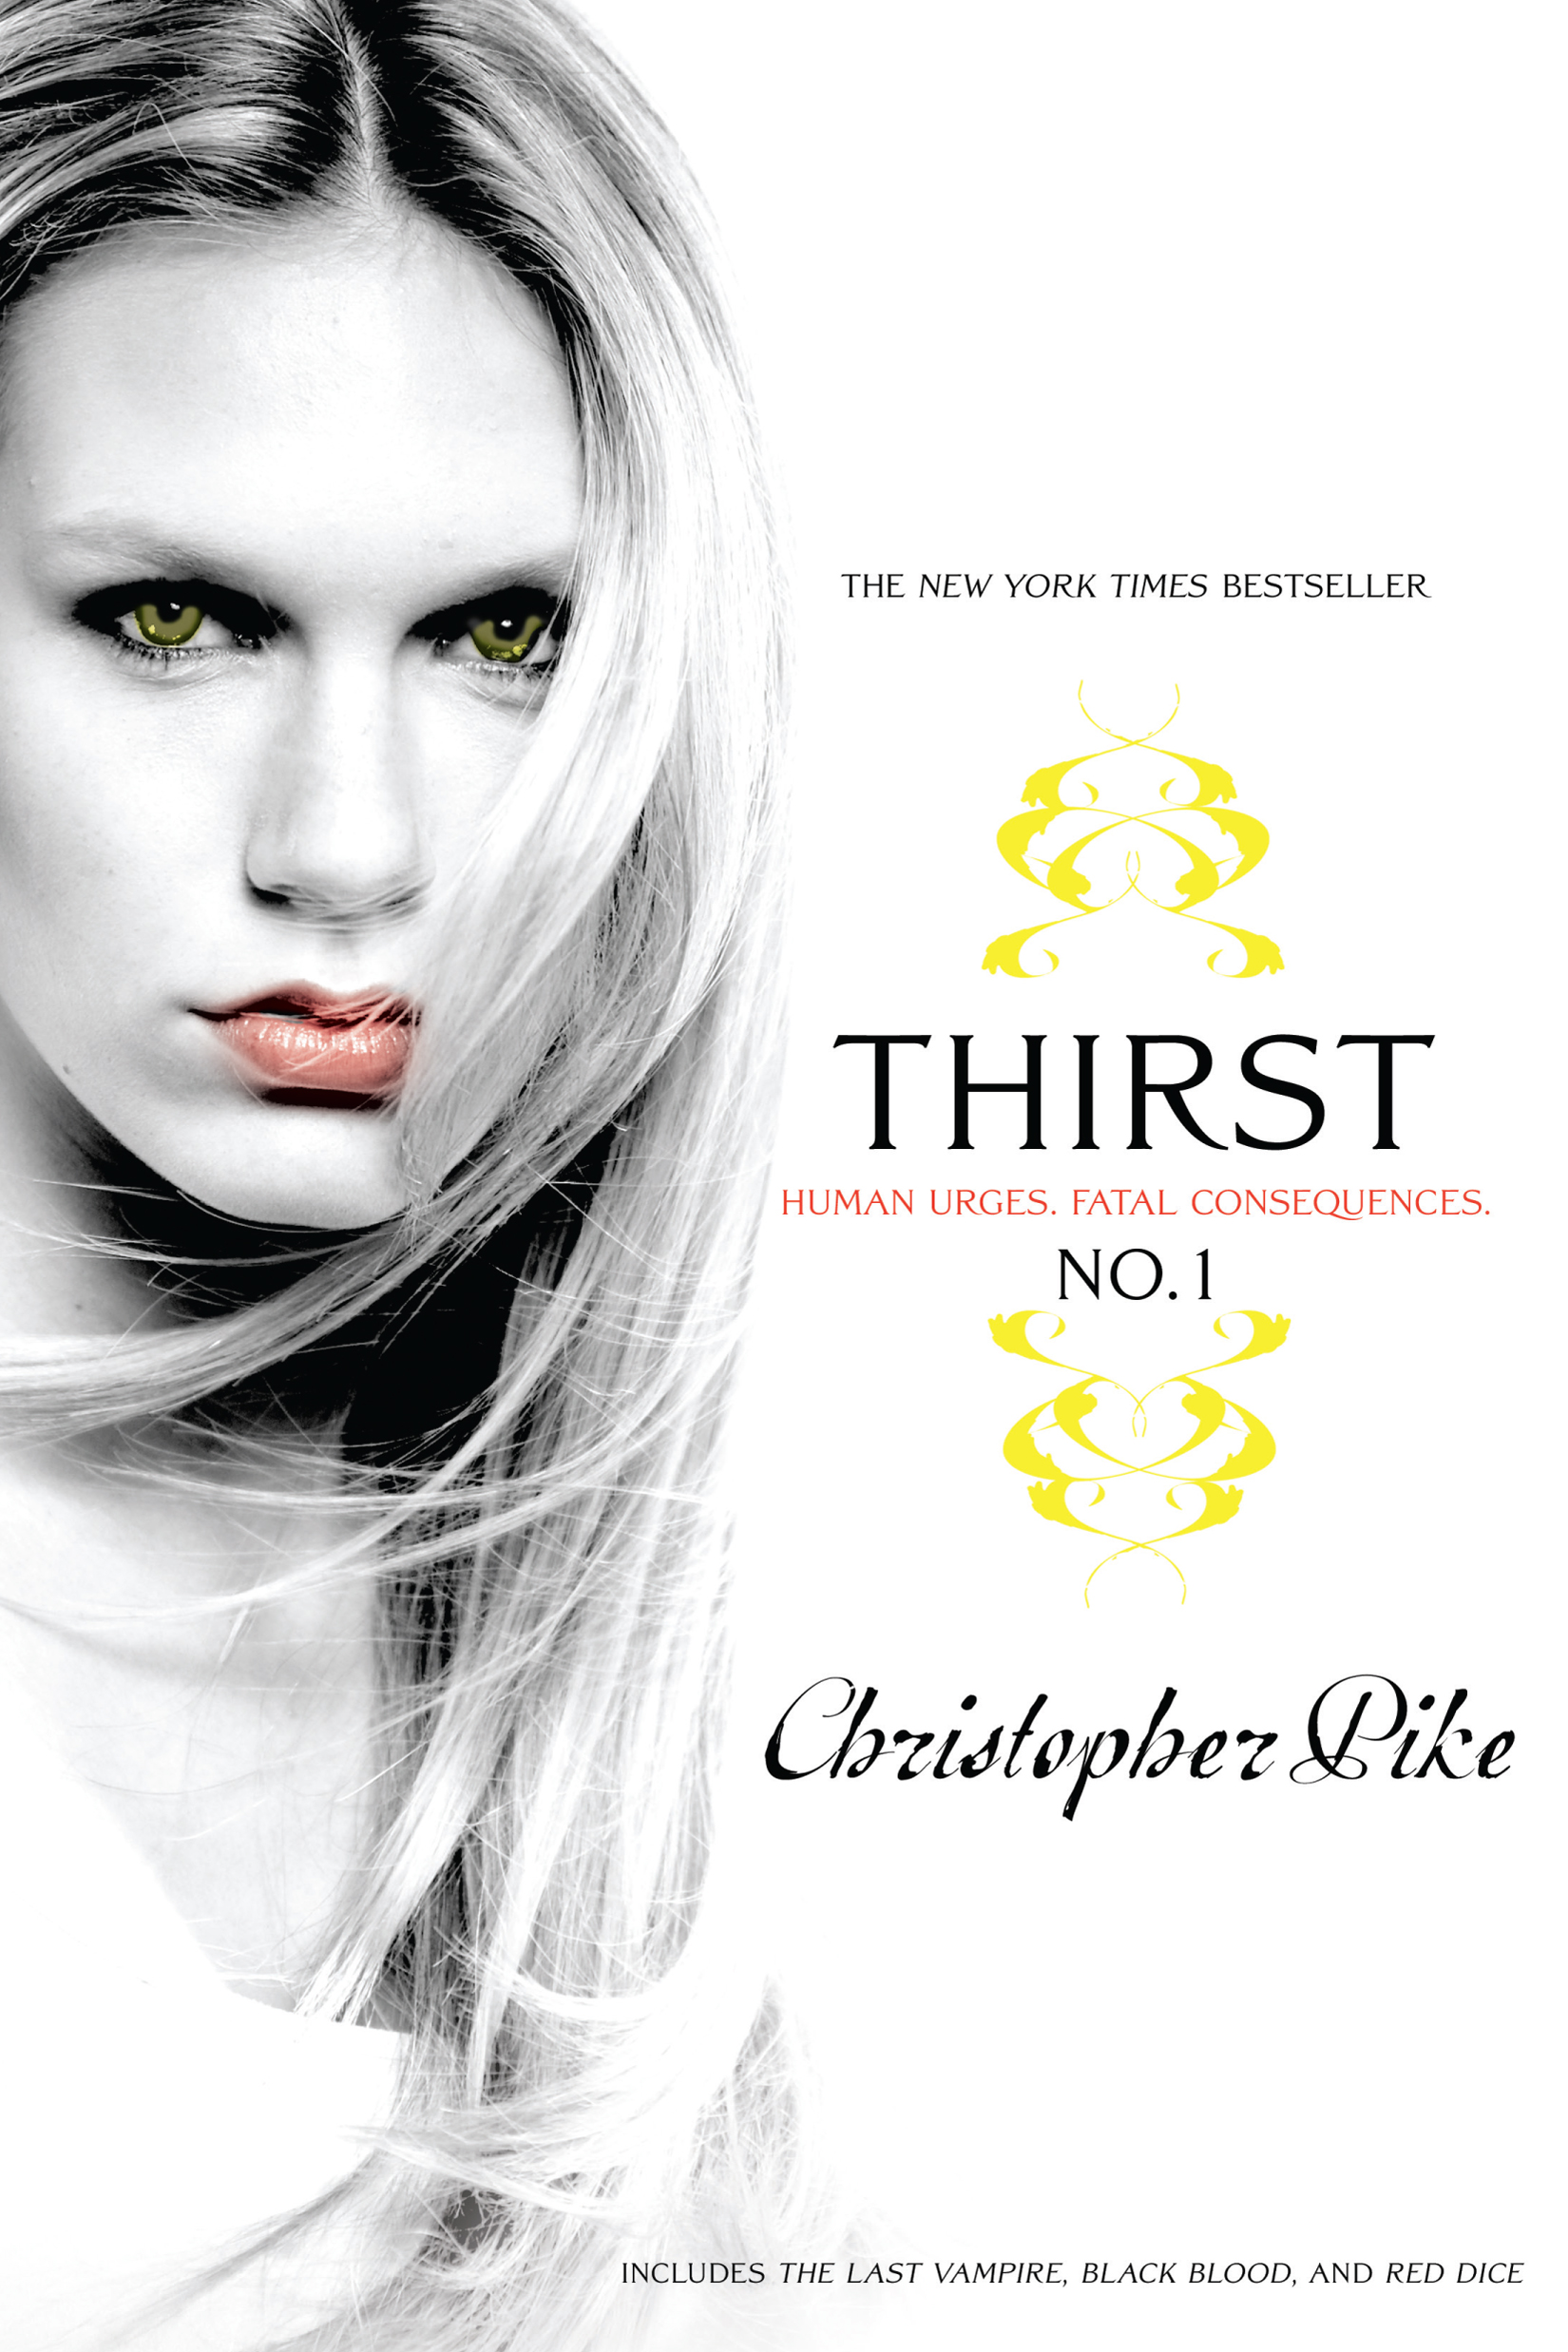 thirst no. 1 | bookchristopher pike | official publisher page